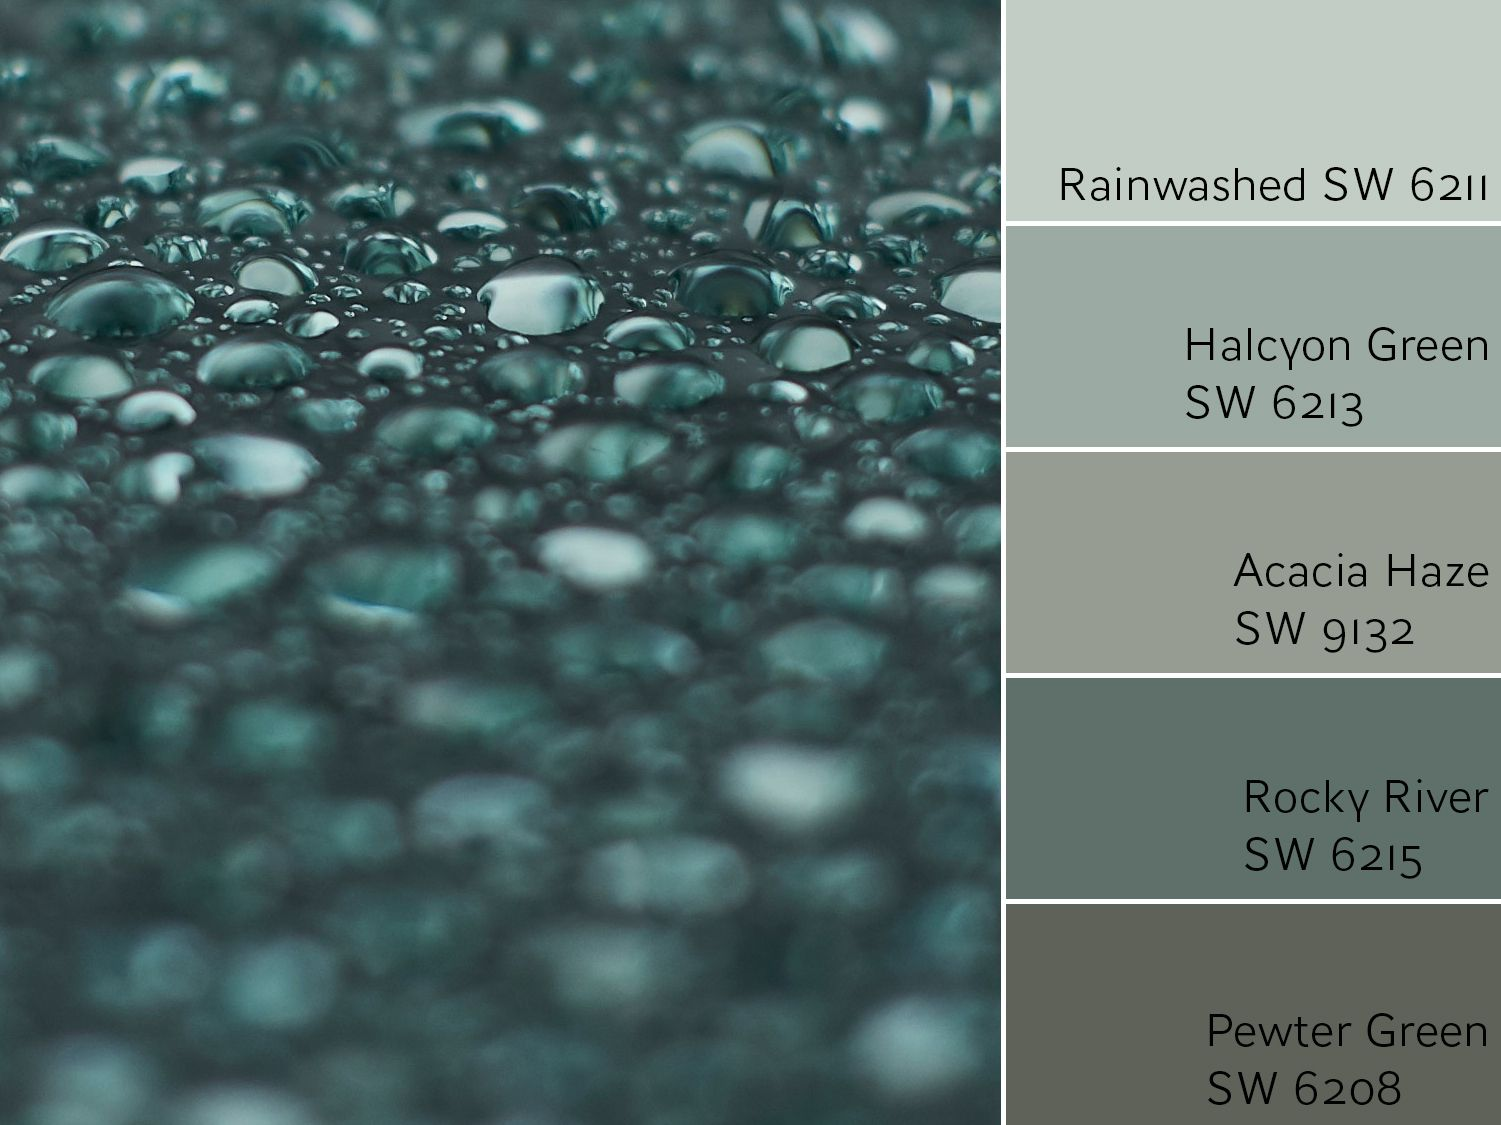 Rainwashed Sw 6211 Review By Laura Rugh Rugh Design,Best Artificial Christmas Trees